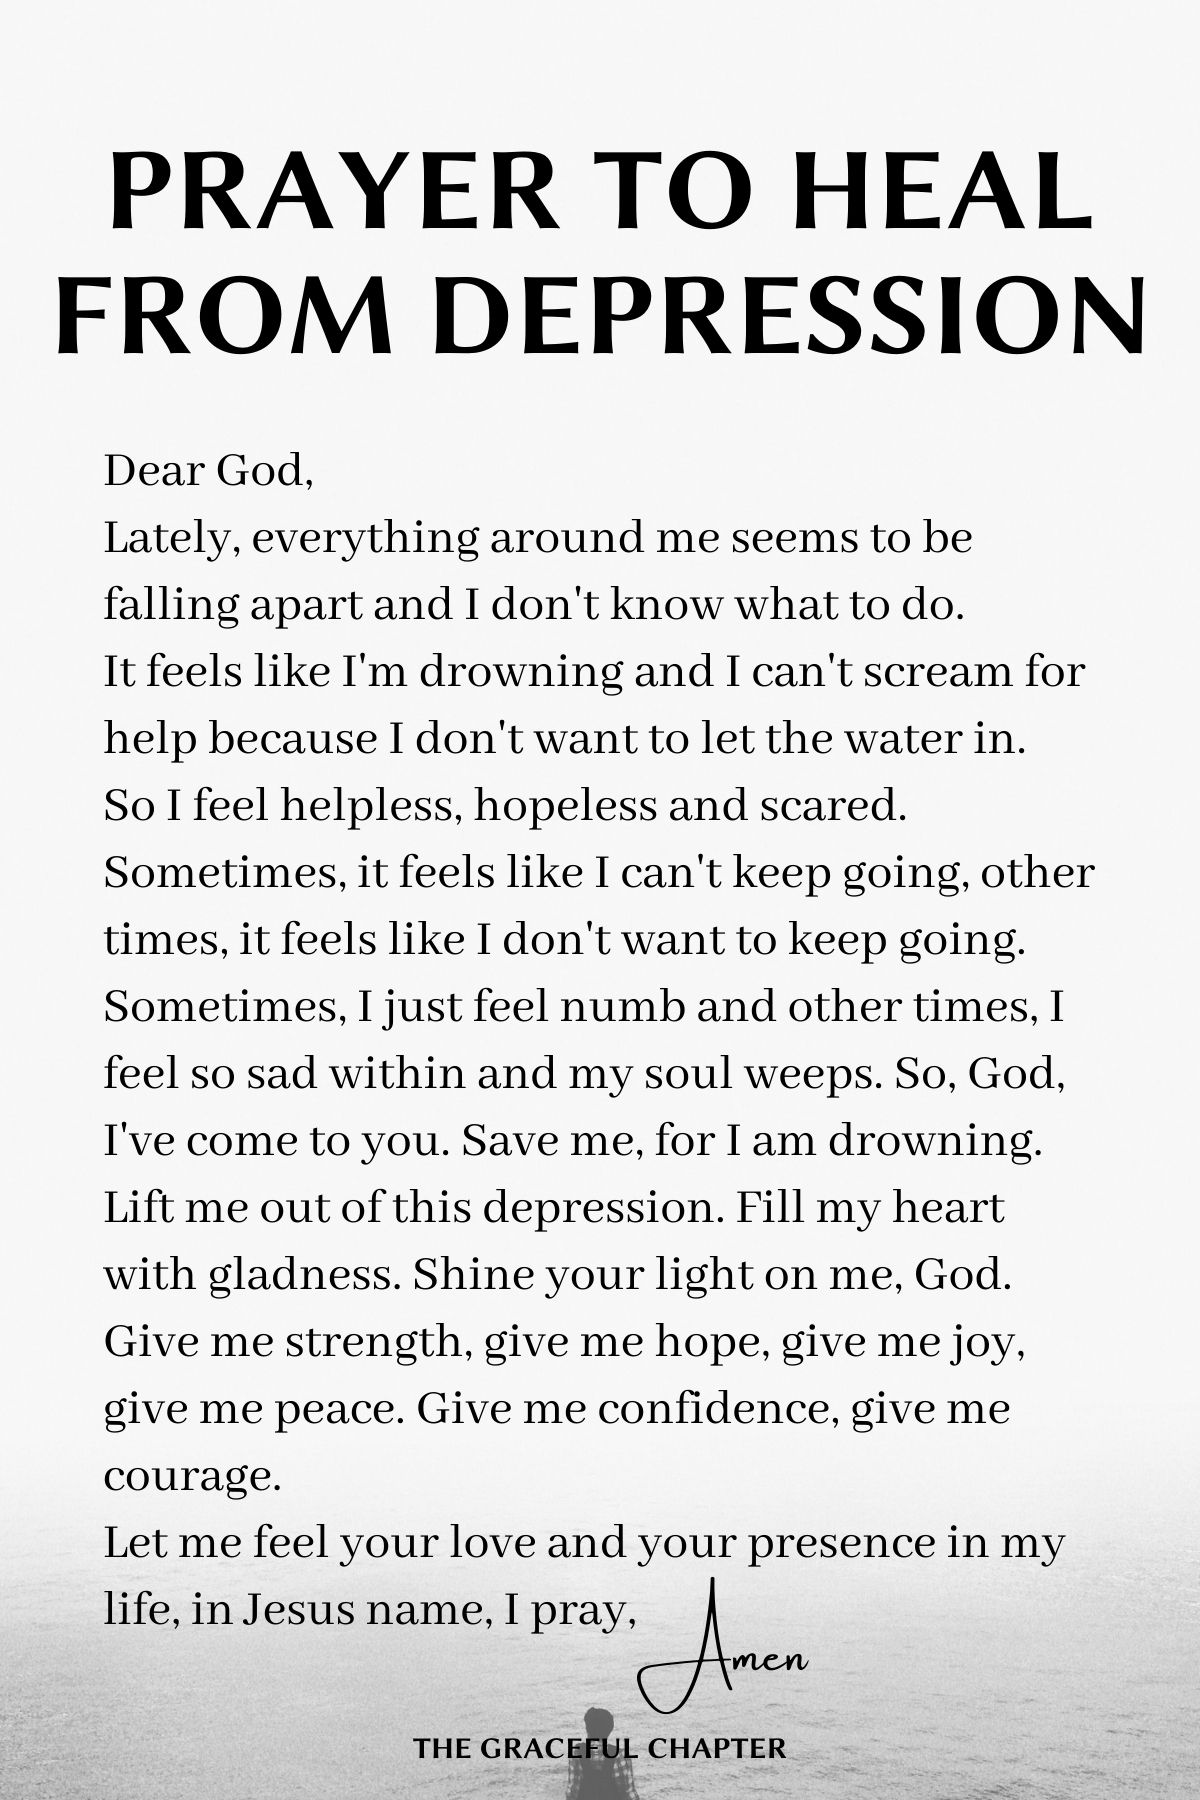 Prayer to heal from depression